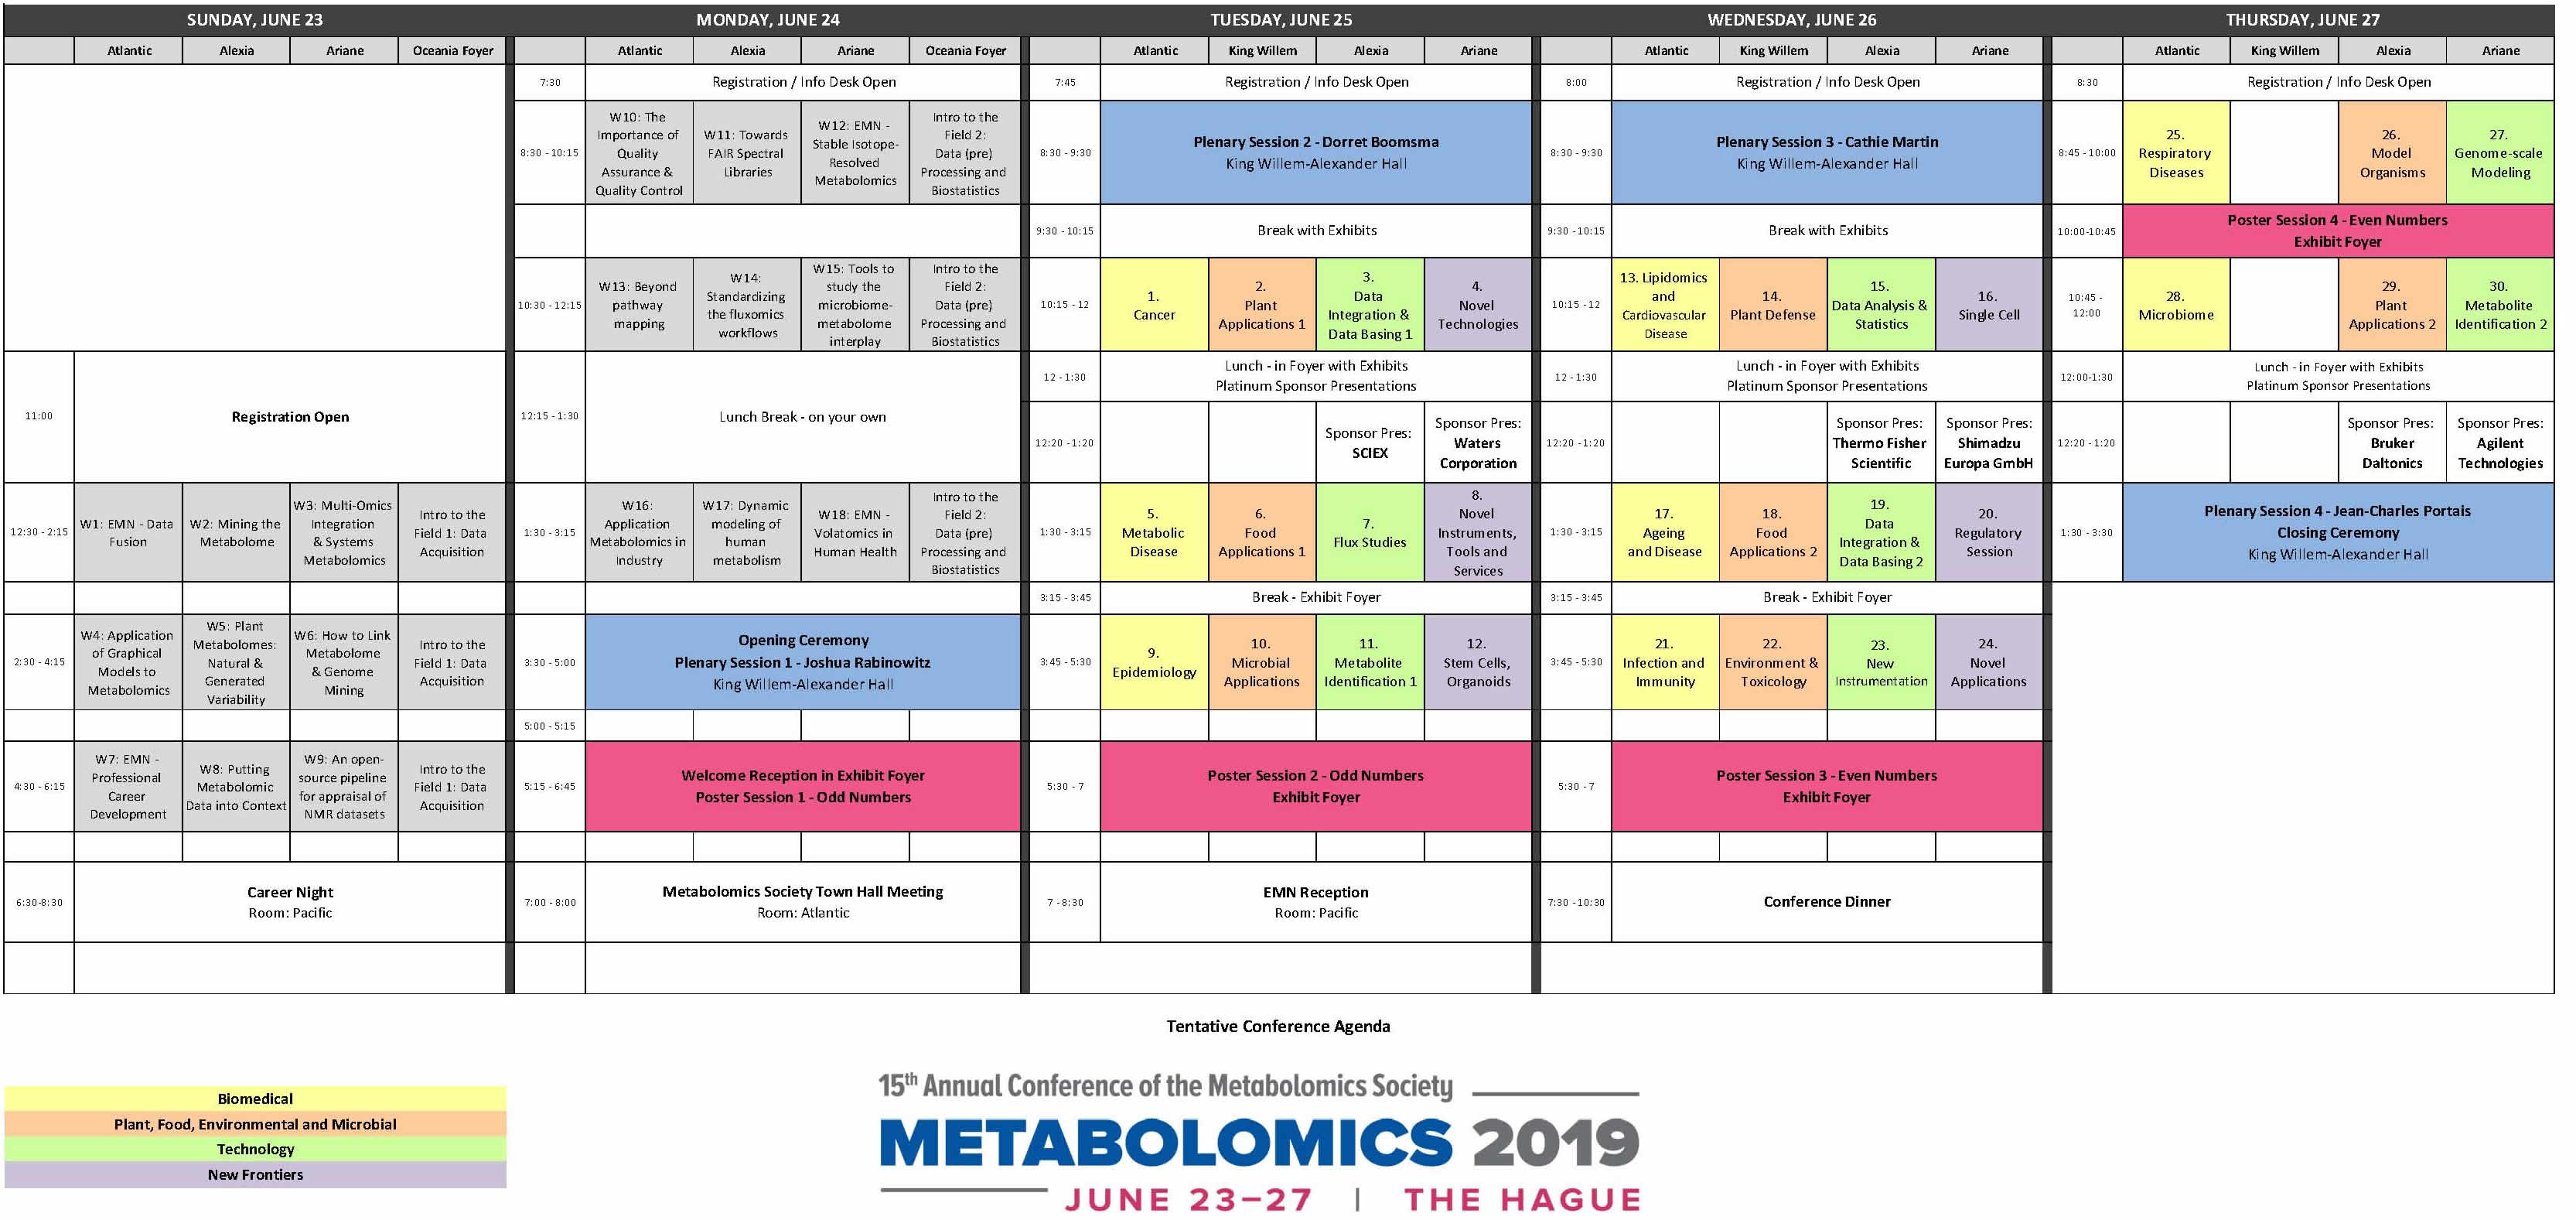 Metabolomics 2019 Agenda 6 13 19